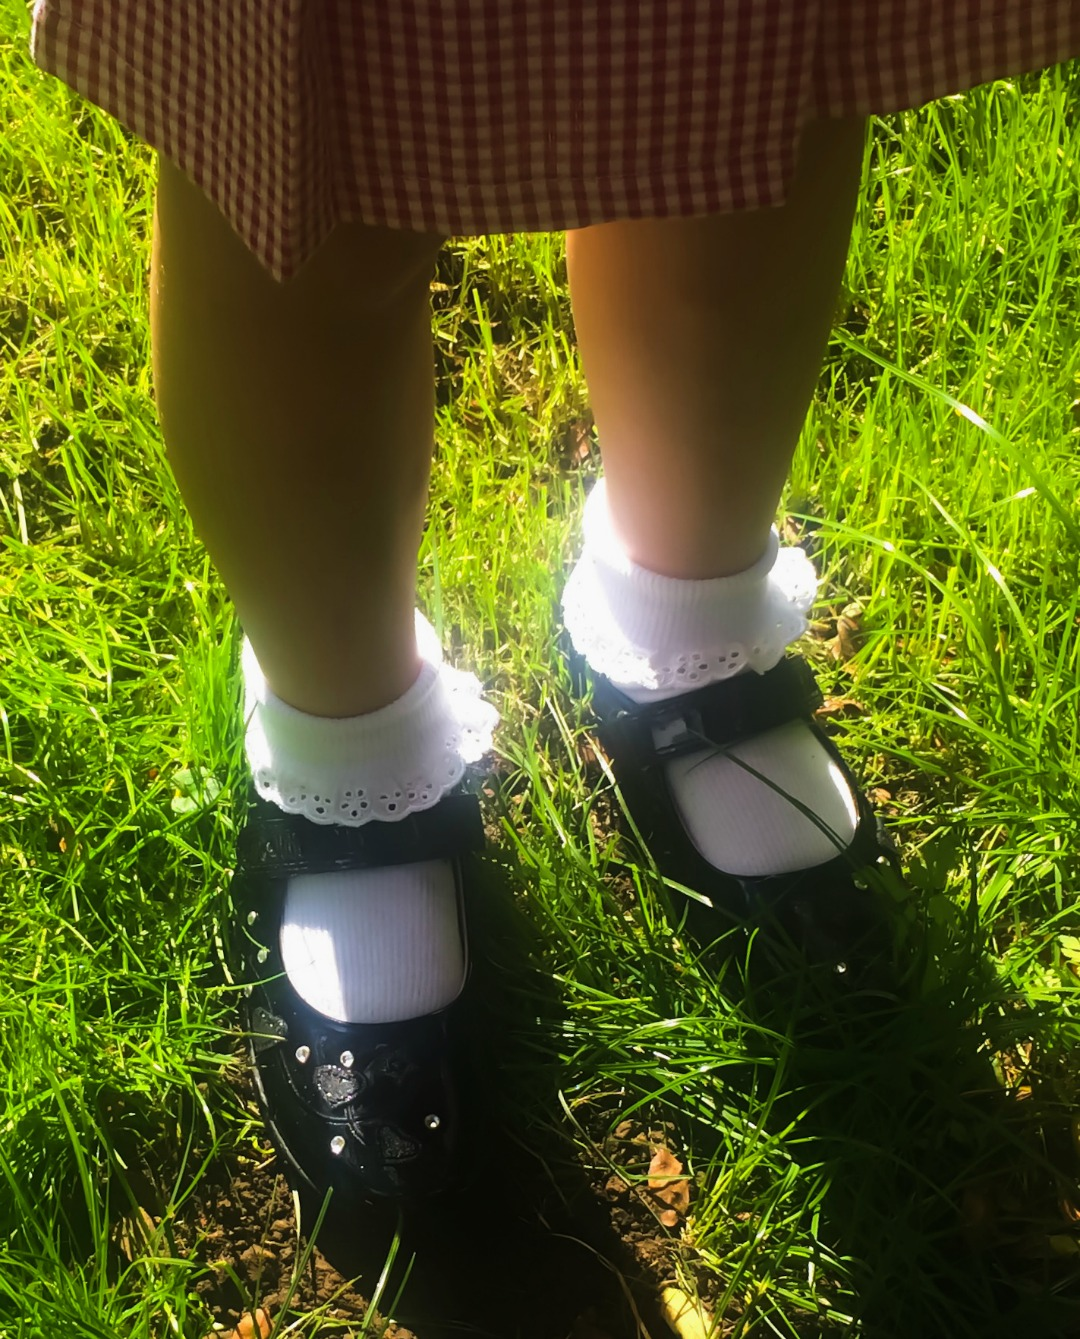 A photograph of a little girl standing in a garden and wearing her first ever pair of school shoes which are from the website Jake Shoes and a pair of black patent Lelli Kelly School Shoes - The First pair of school shoes with Jake Shoes - Mrs H's favourite things